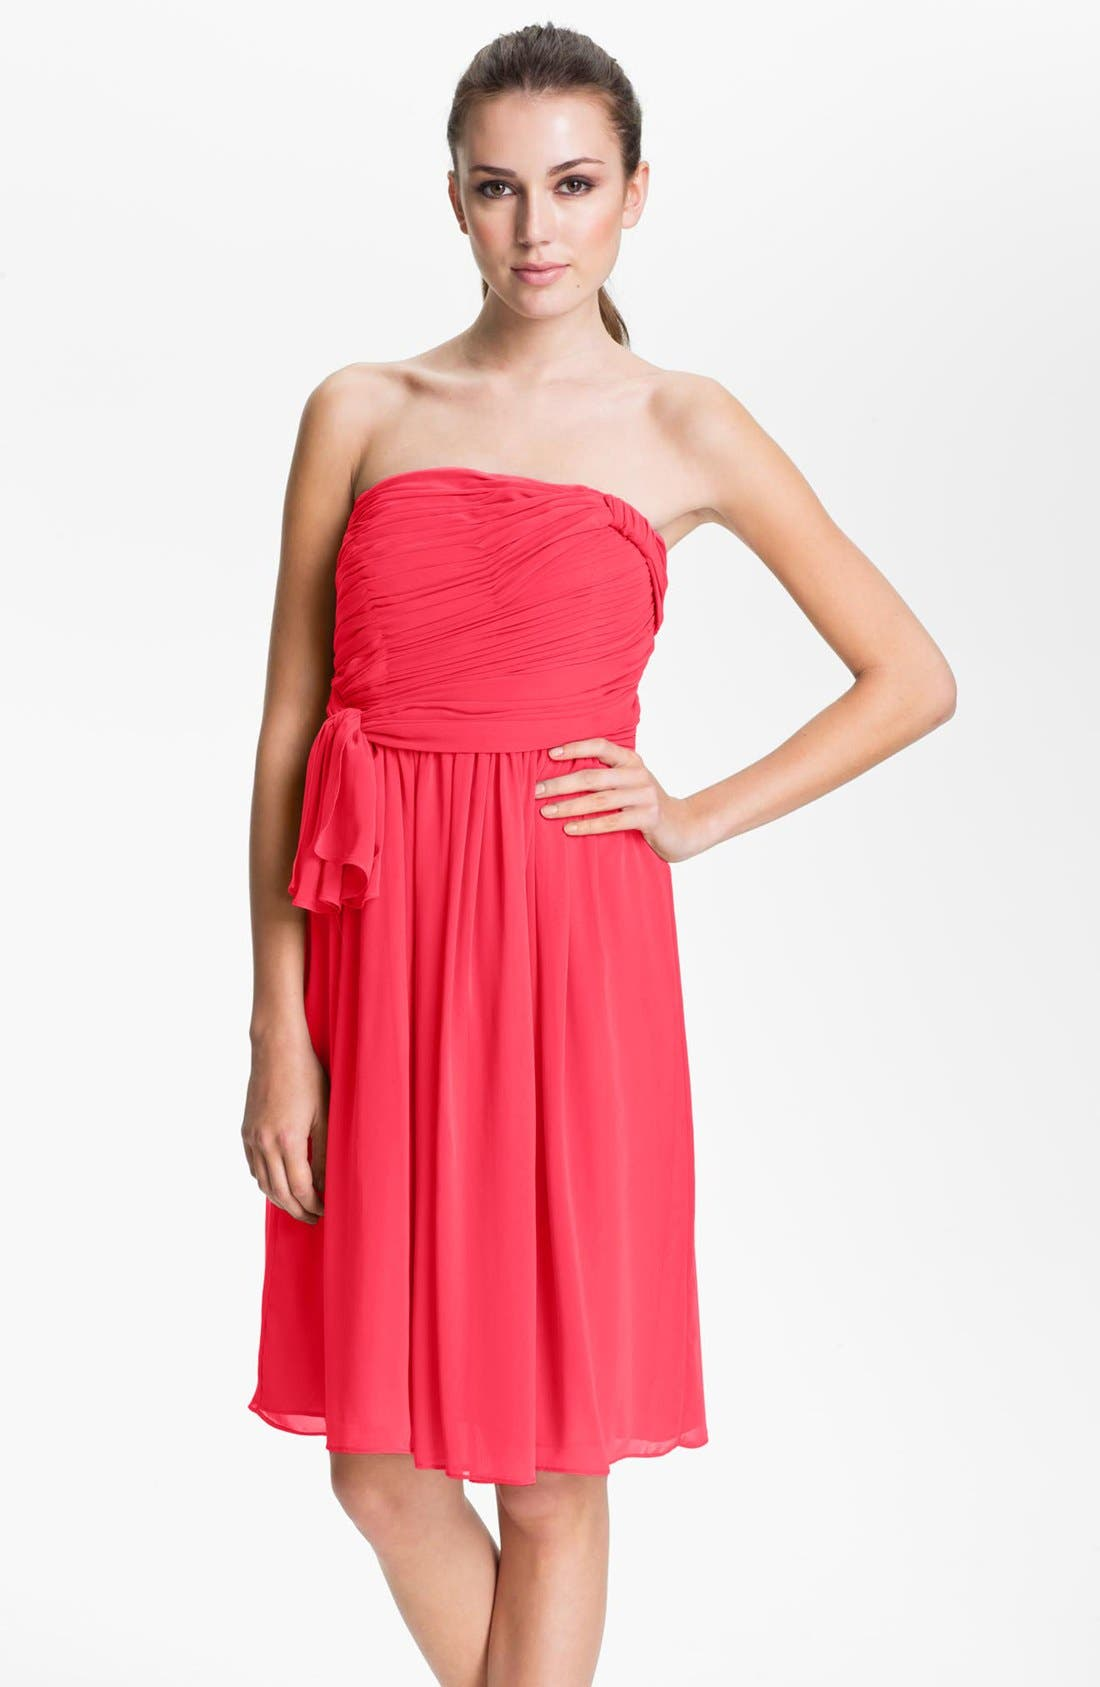 Alternate Image 1 Selected - Calvin Klein Strapless Ruched Chiffon Dress